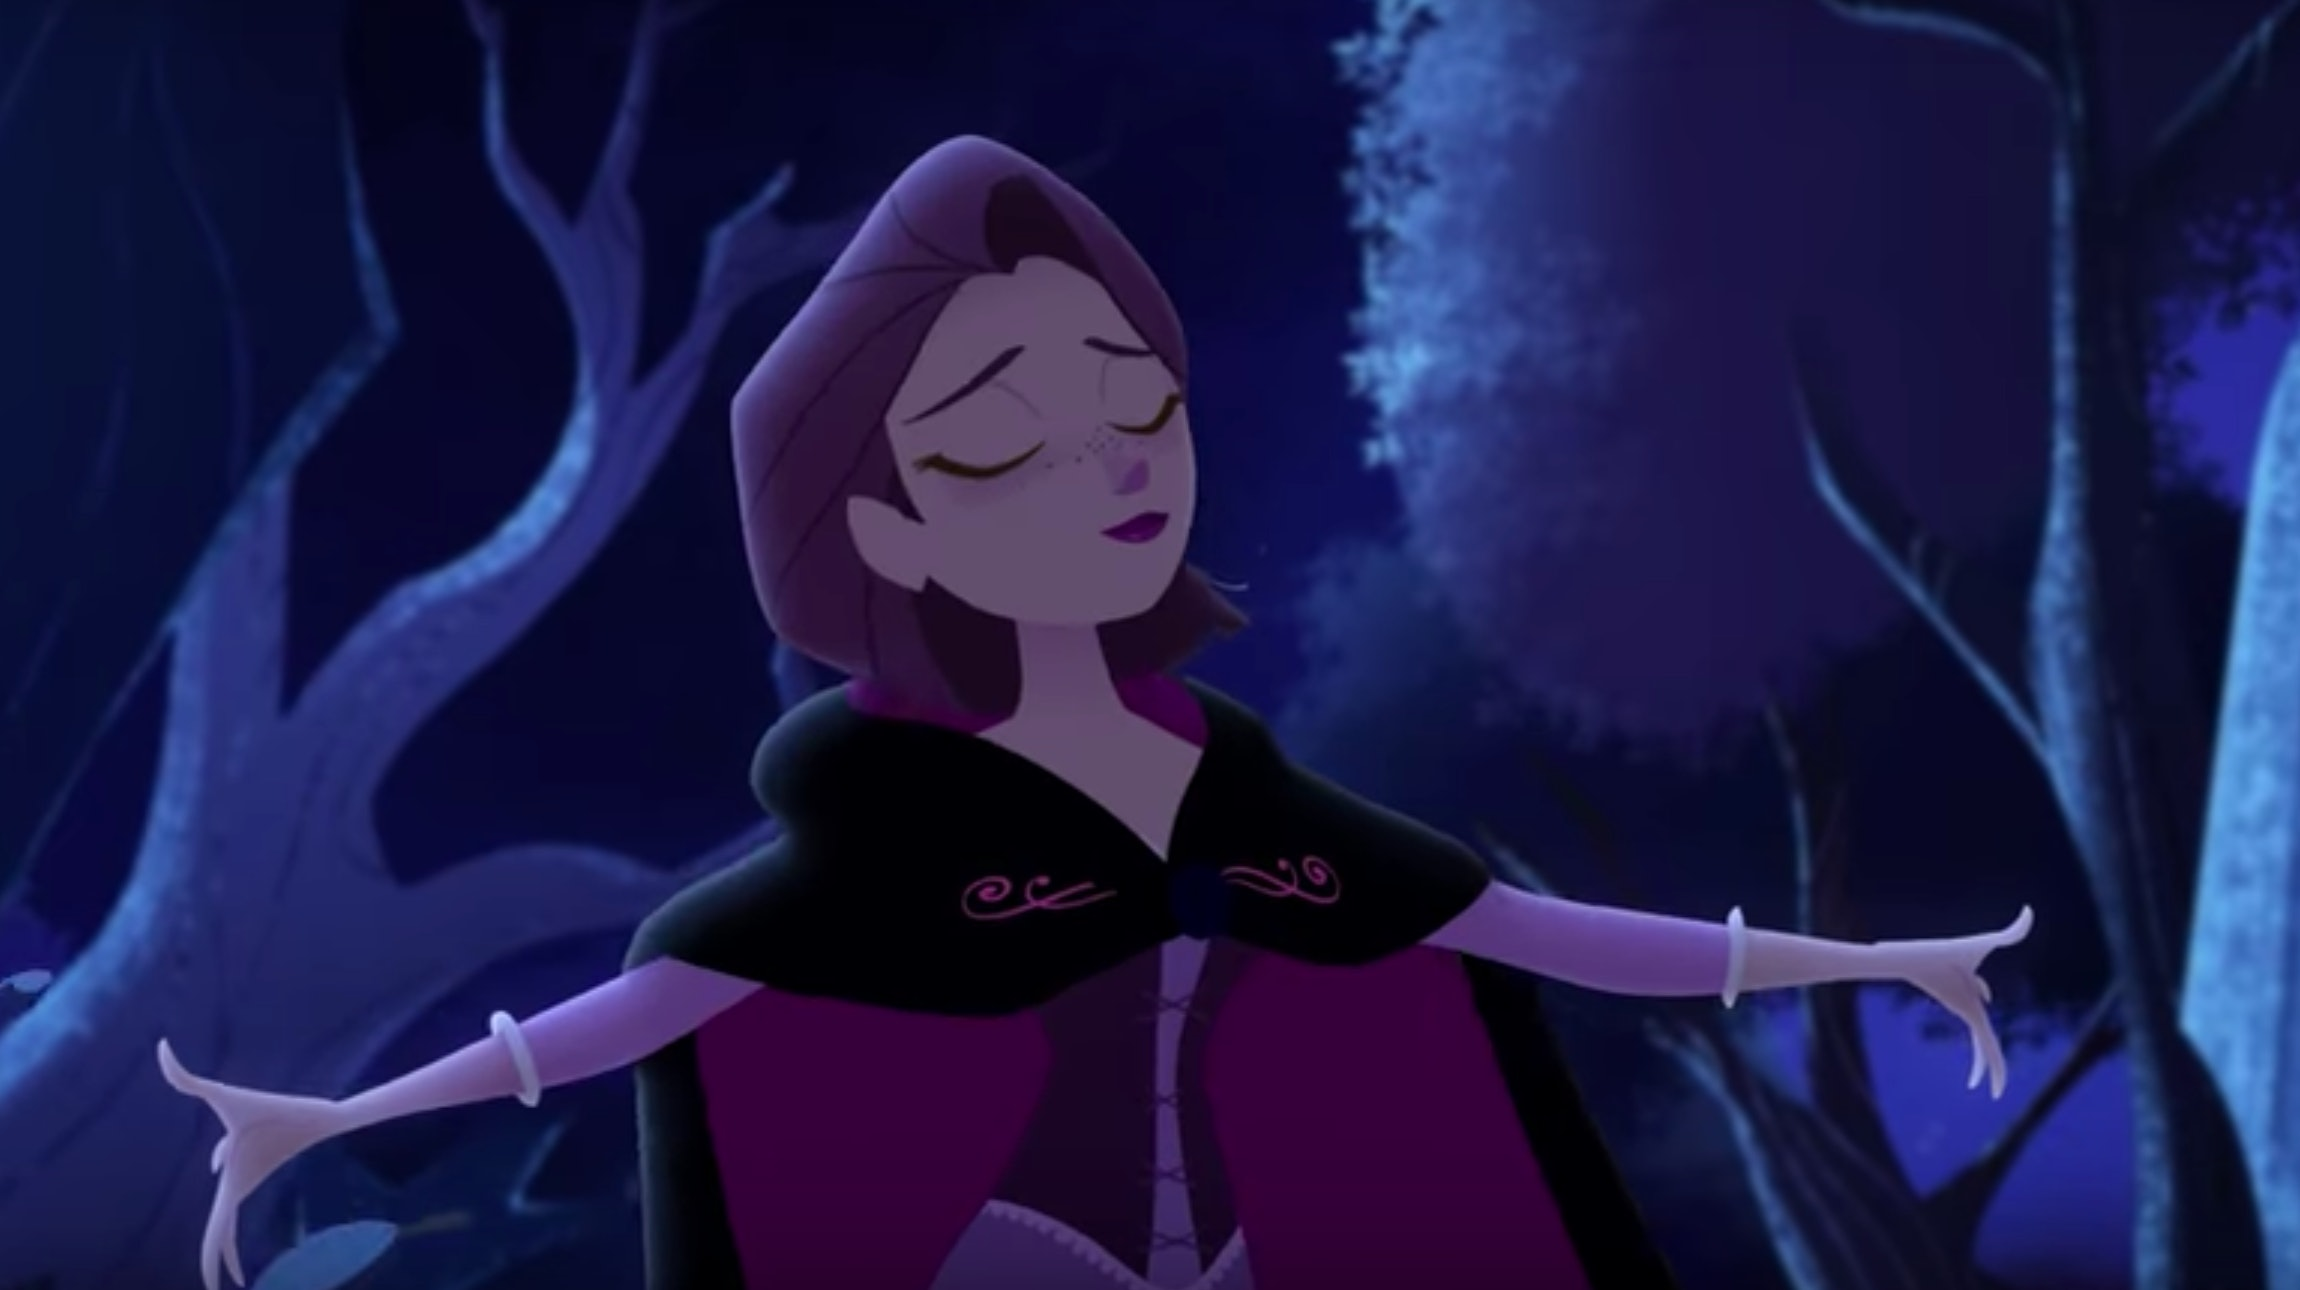 Mandy Moore S Tangled Song Lyrics To Wind In My Hair Will Get You Excited For The Disney Channel Sequel